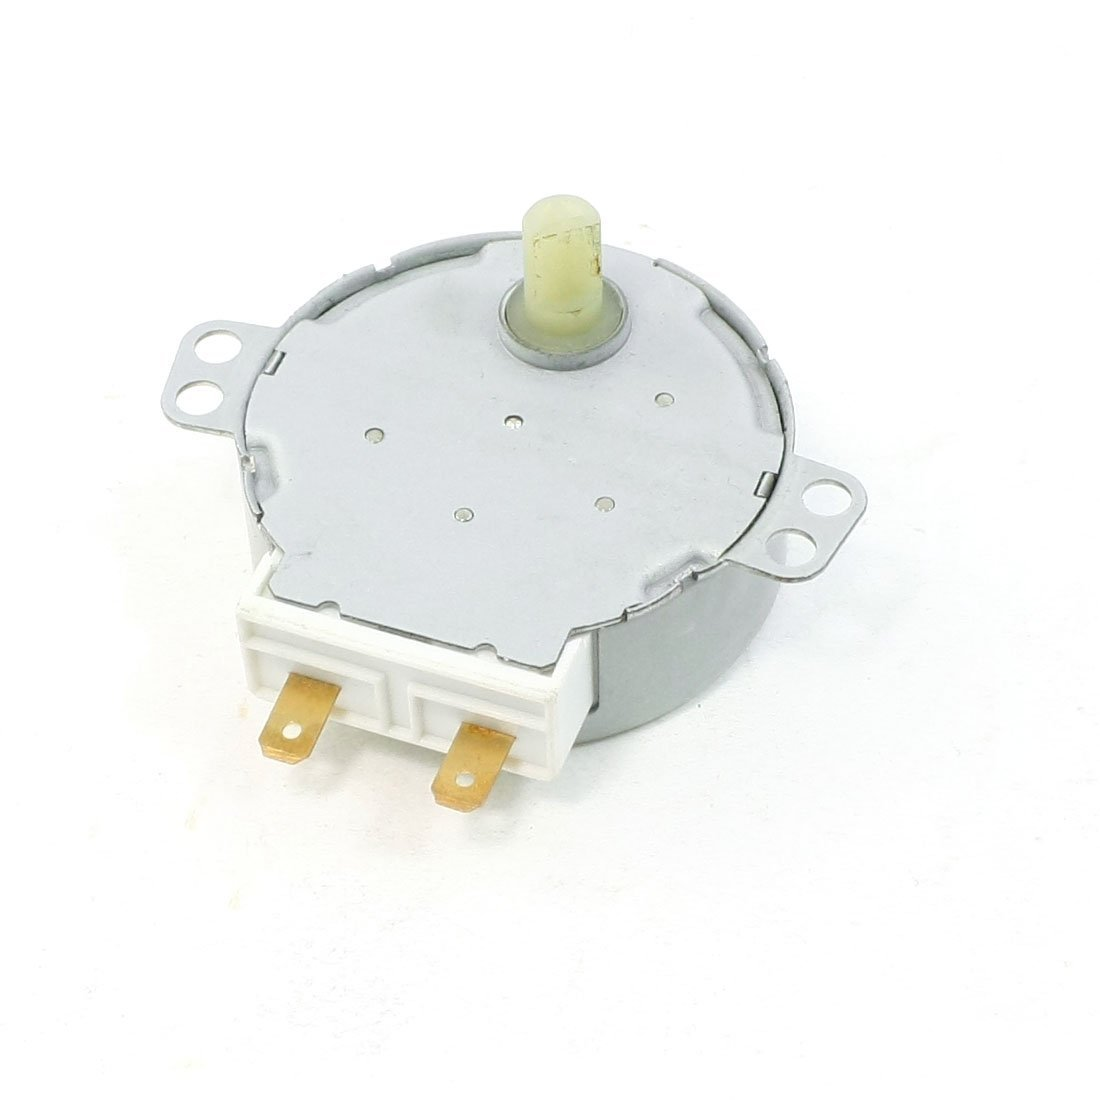 sourcingmap® AC 220V/240V 4W 4-4.8 RPM Microwave Oven Turntable Synchronous Motor TRTAXCEEGF7844